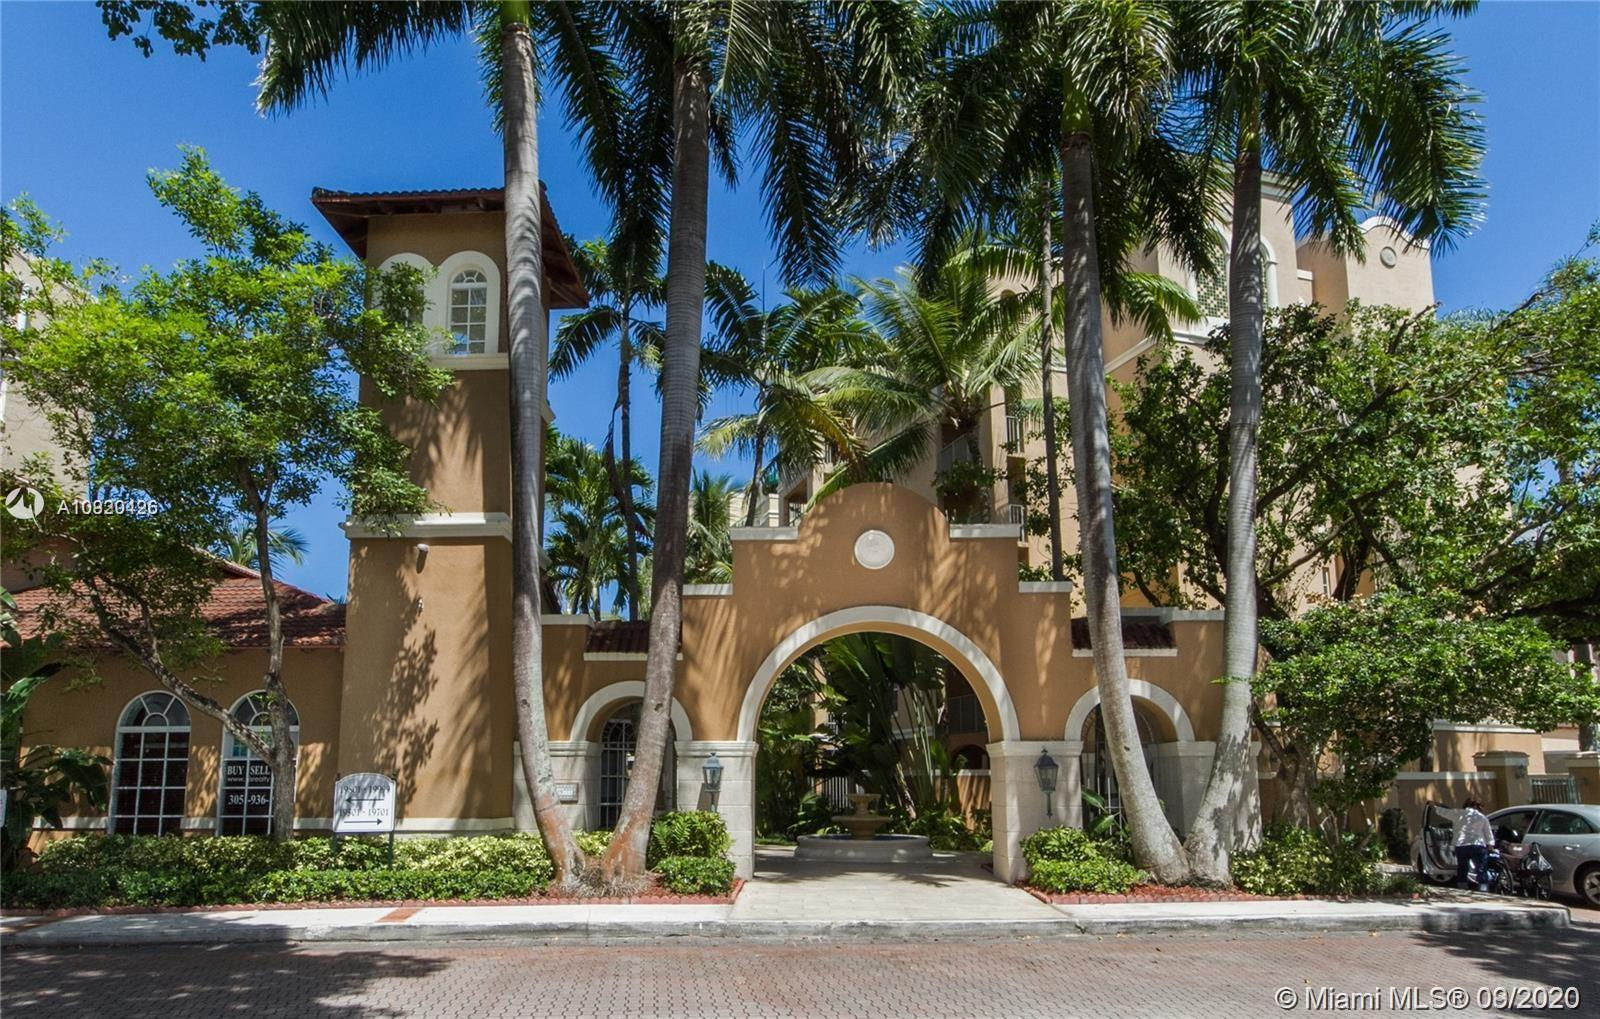 Condo in gated community at Yacht Club in Aventura; small walking distance to golf course. First cla